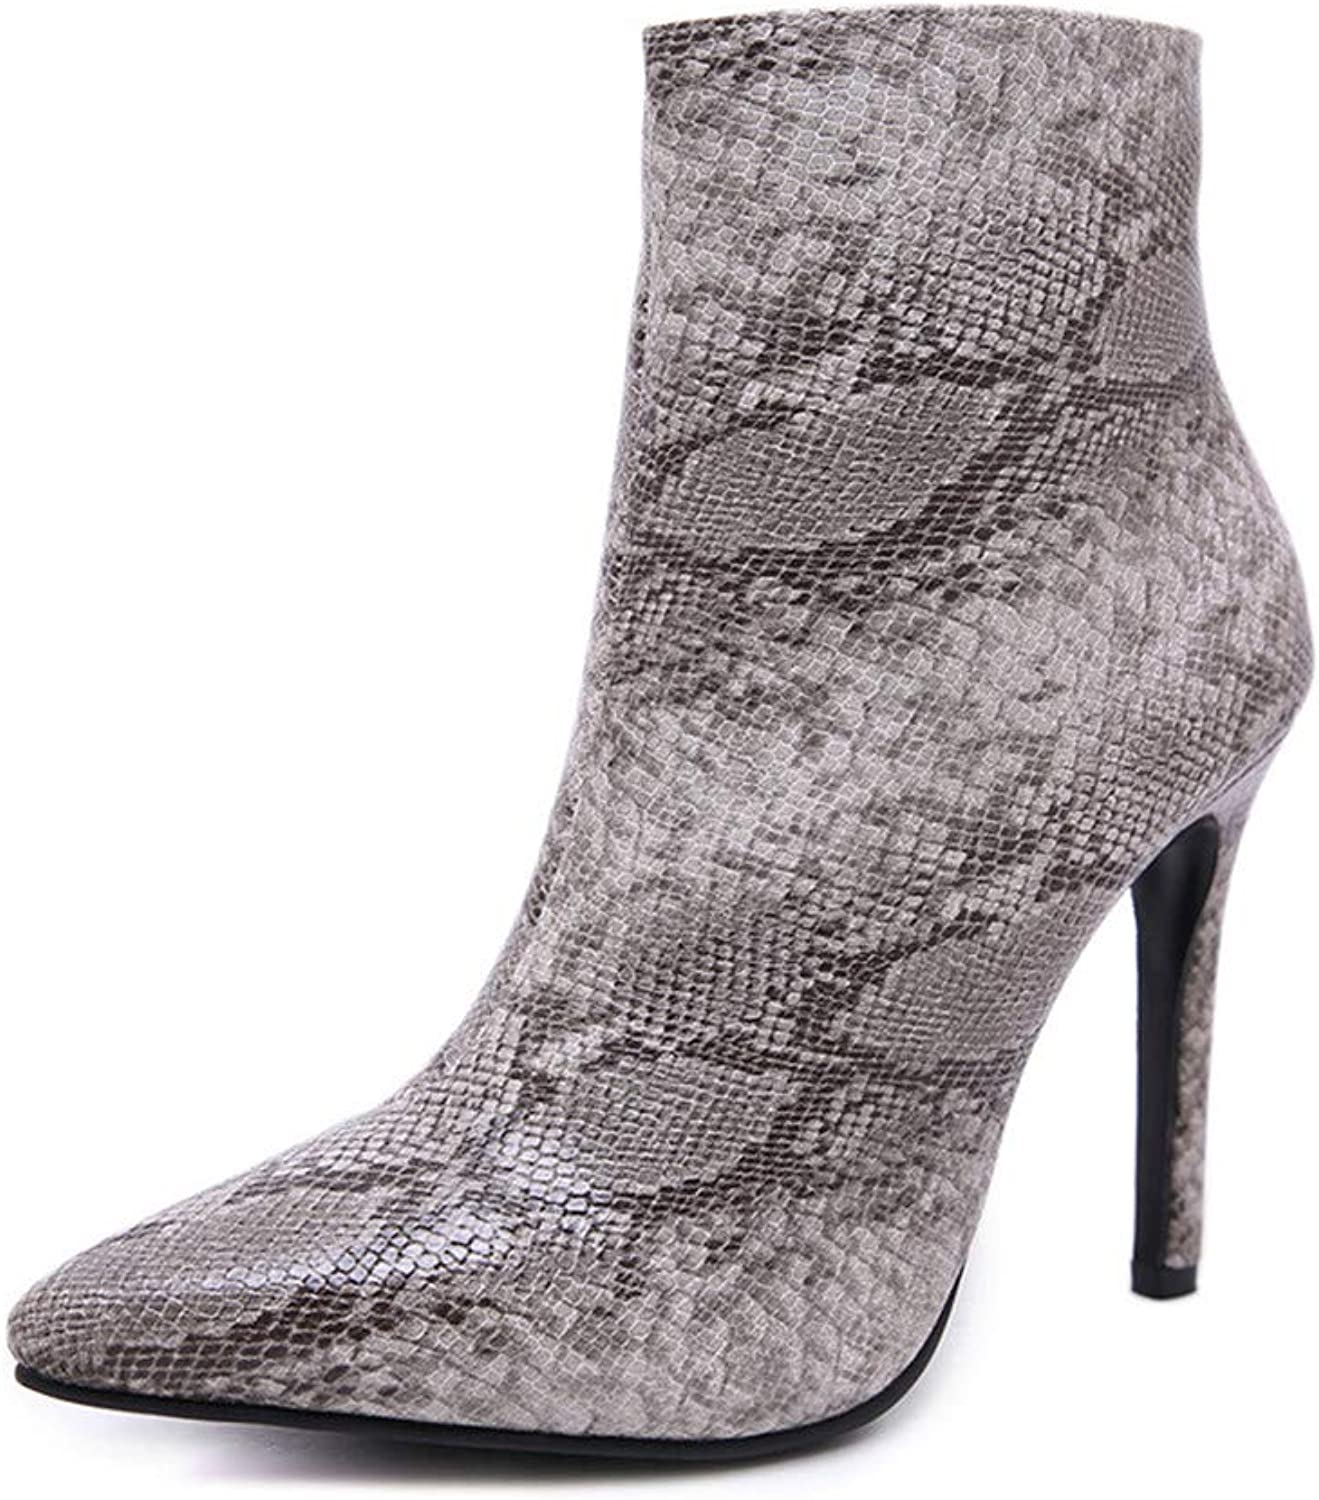 Winter Ladies Snakeskin Stiletto Pointed Boots Large Size PU Leather Warm Artificial Faux Lining